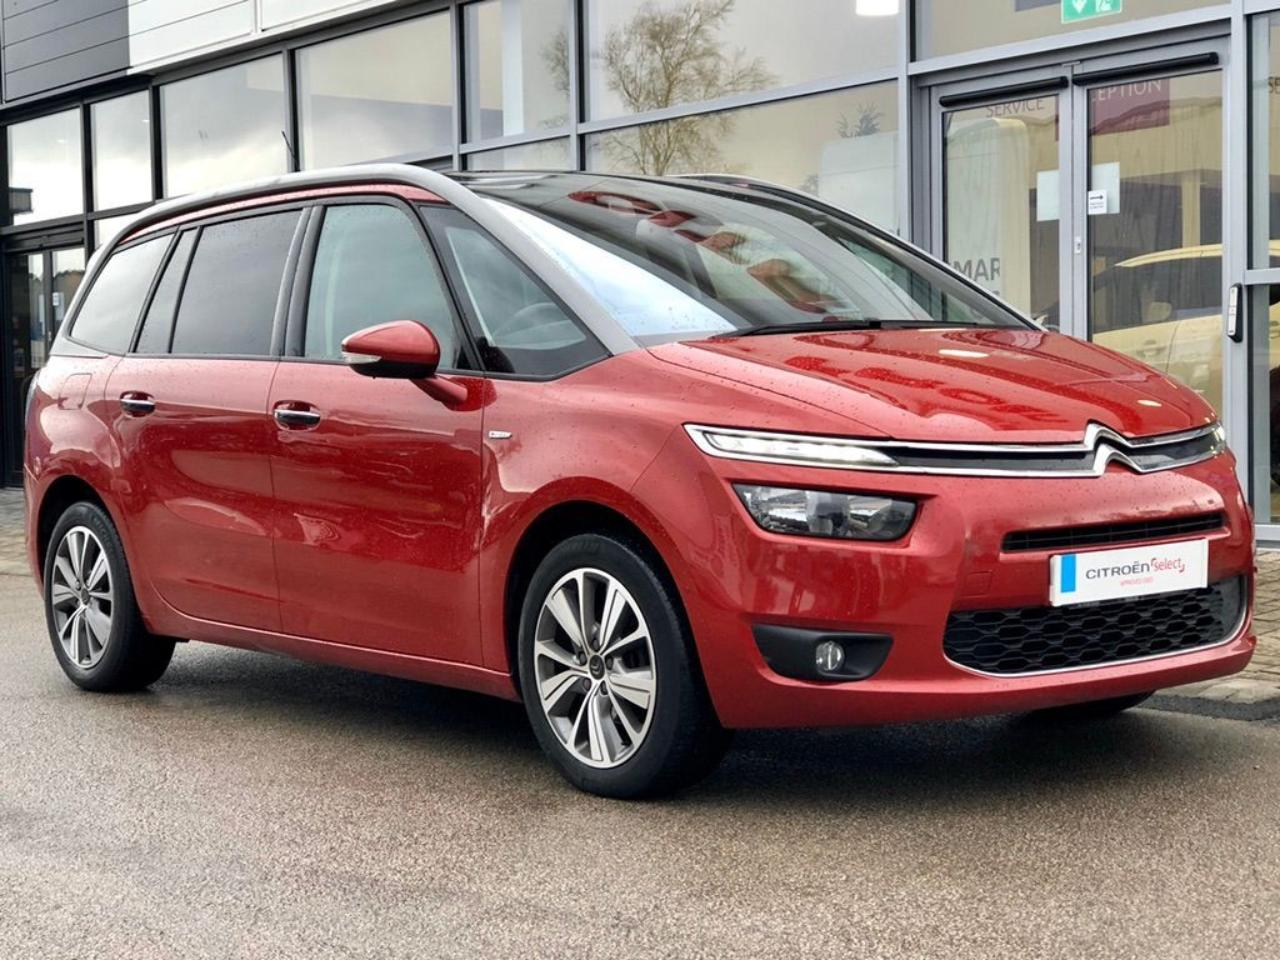 Citroën Grand C4 Picasso 1.6 BlueHDi Exclusive+ (s/s) 5dr